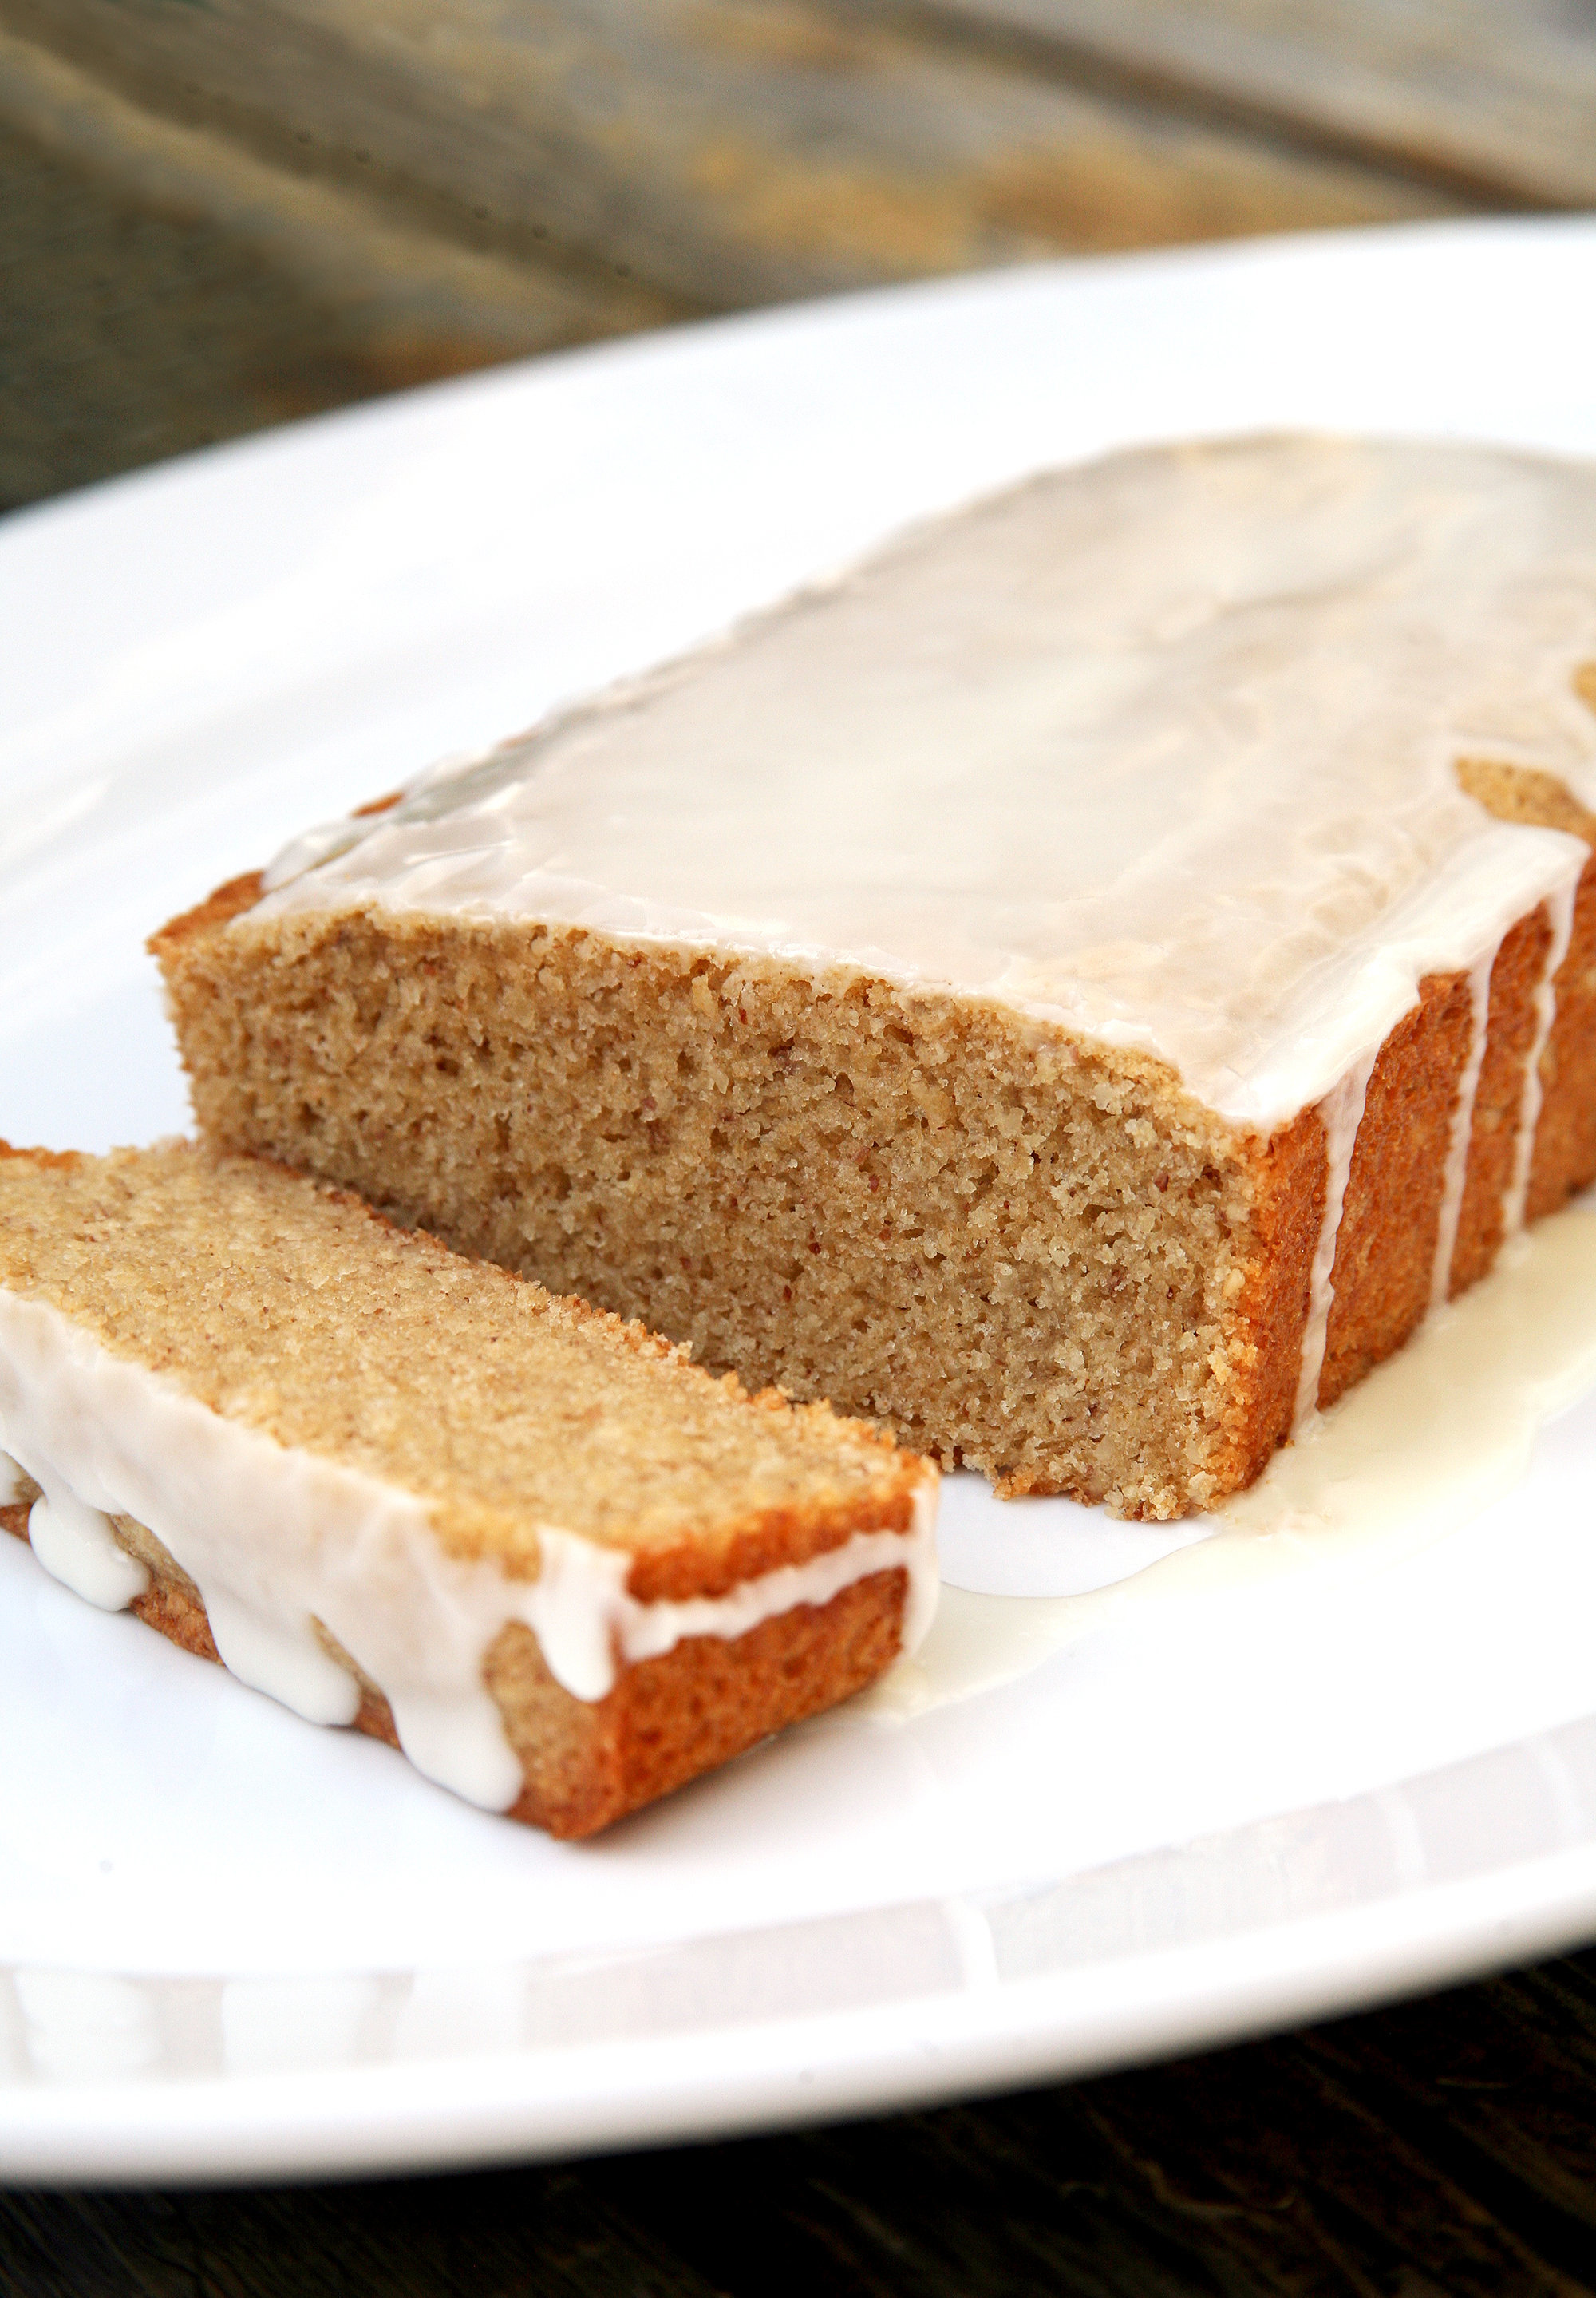 Starbucks Lemon Pound Cake Vegan